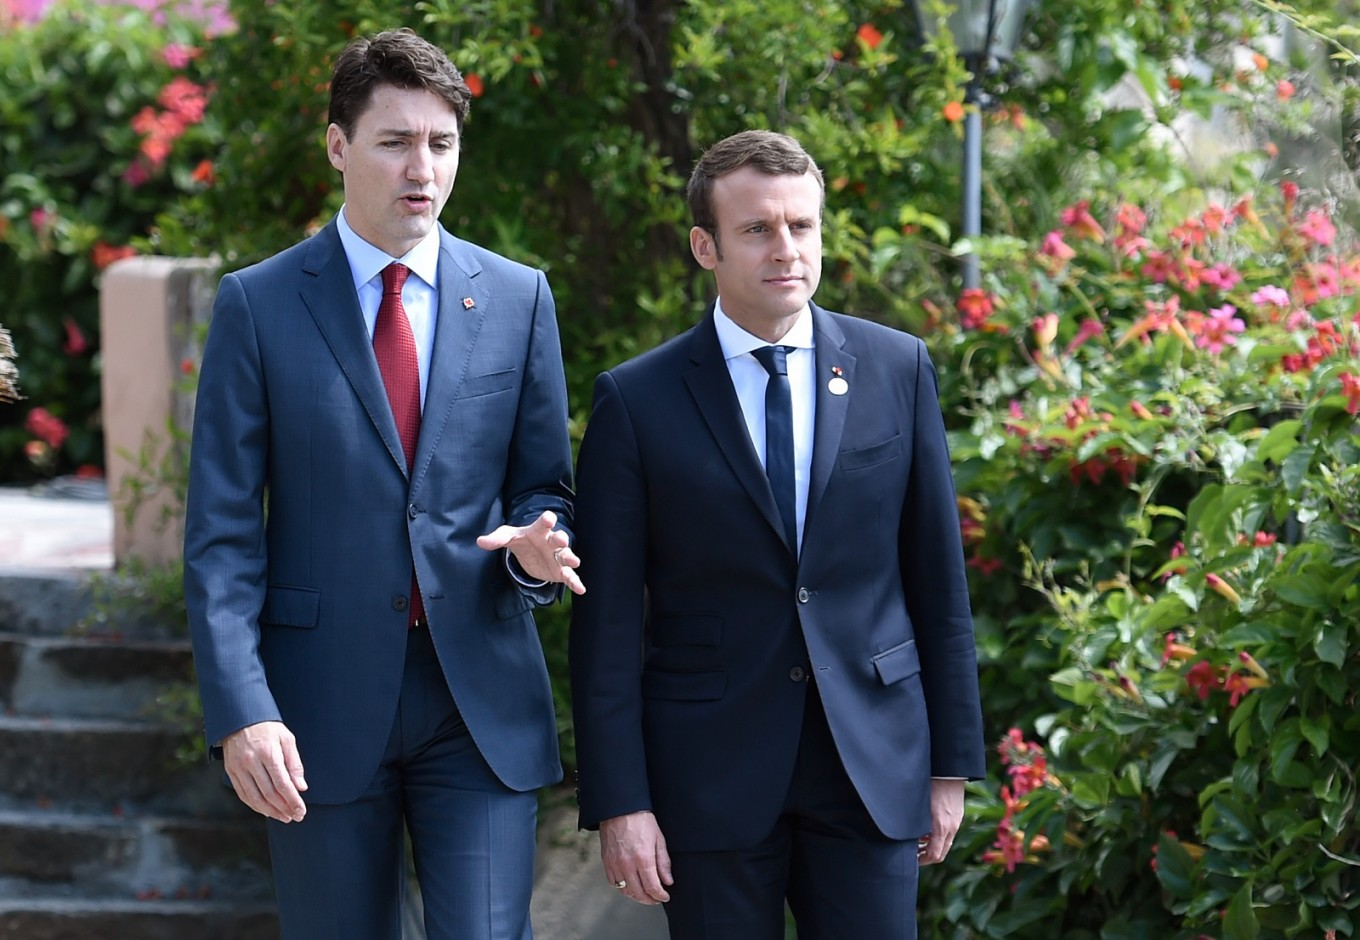 Justin Trudeau speaks with Emmanuel Macron